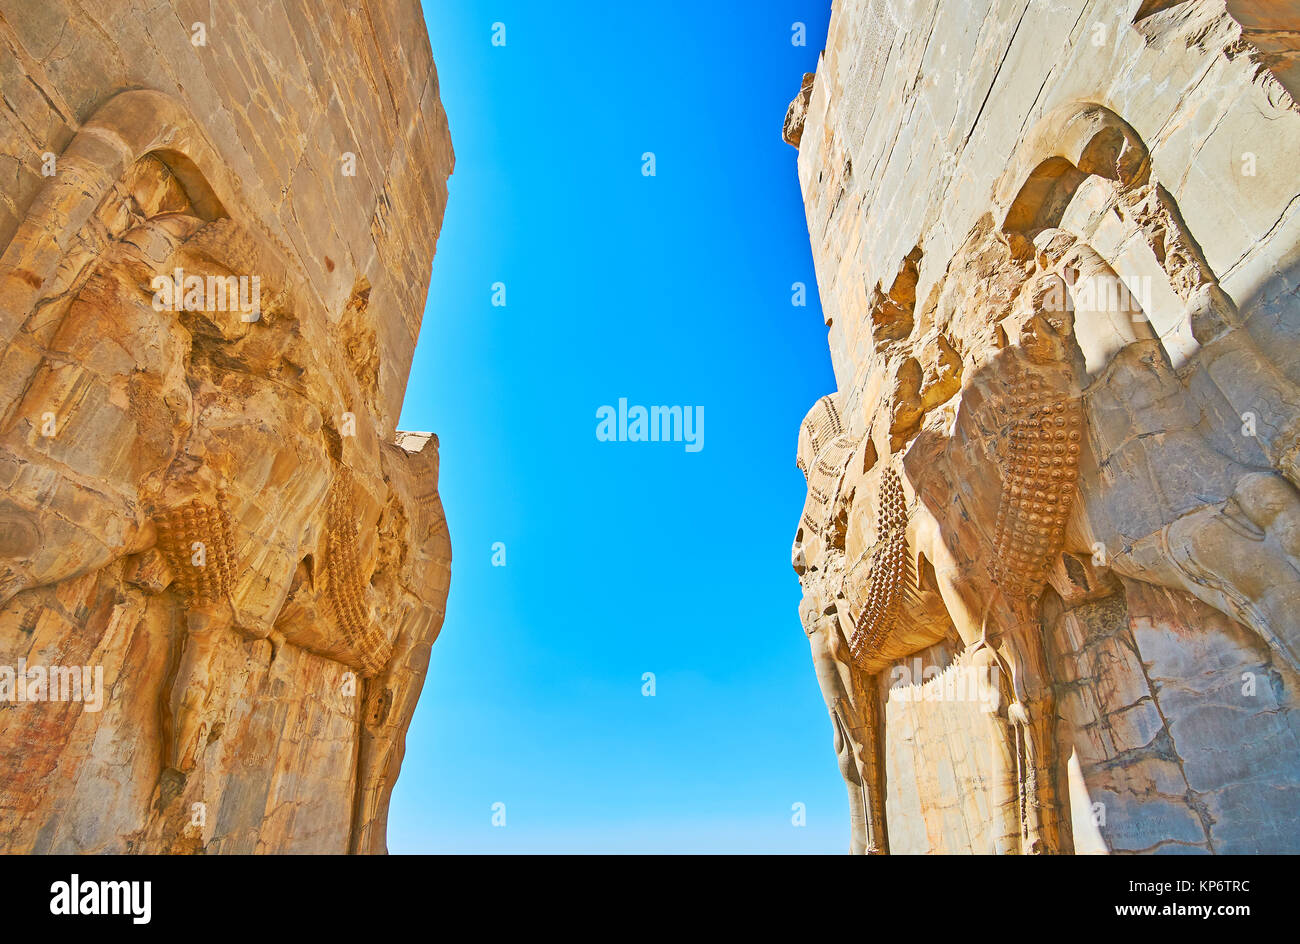 The ancient giant statues of bulls on walls of All Nations (Xerxes) Gate in Persepolis archaeological site, Iran. Stock Photo